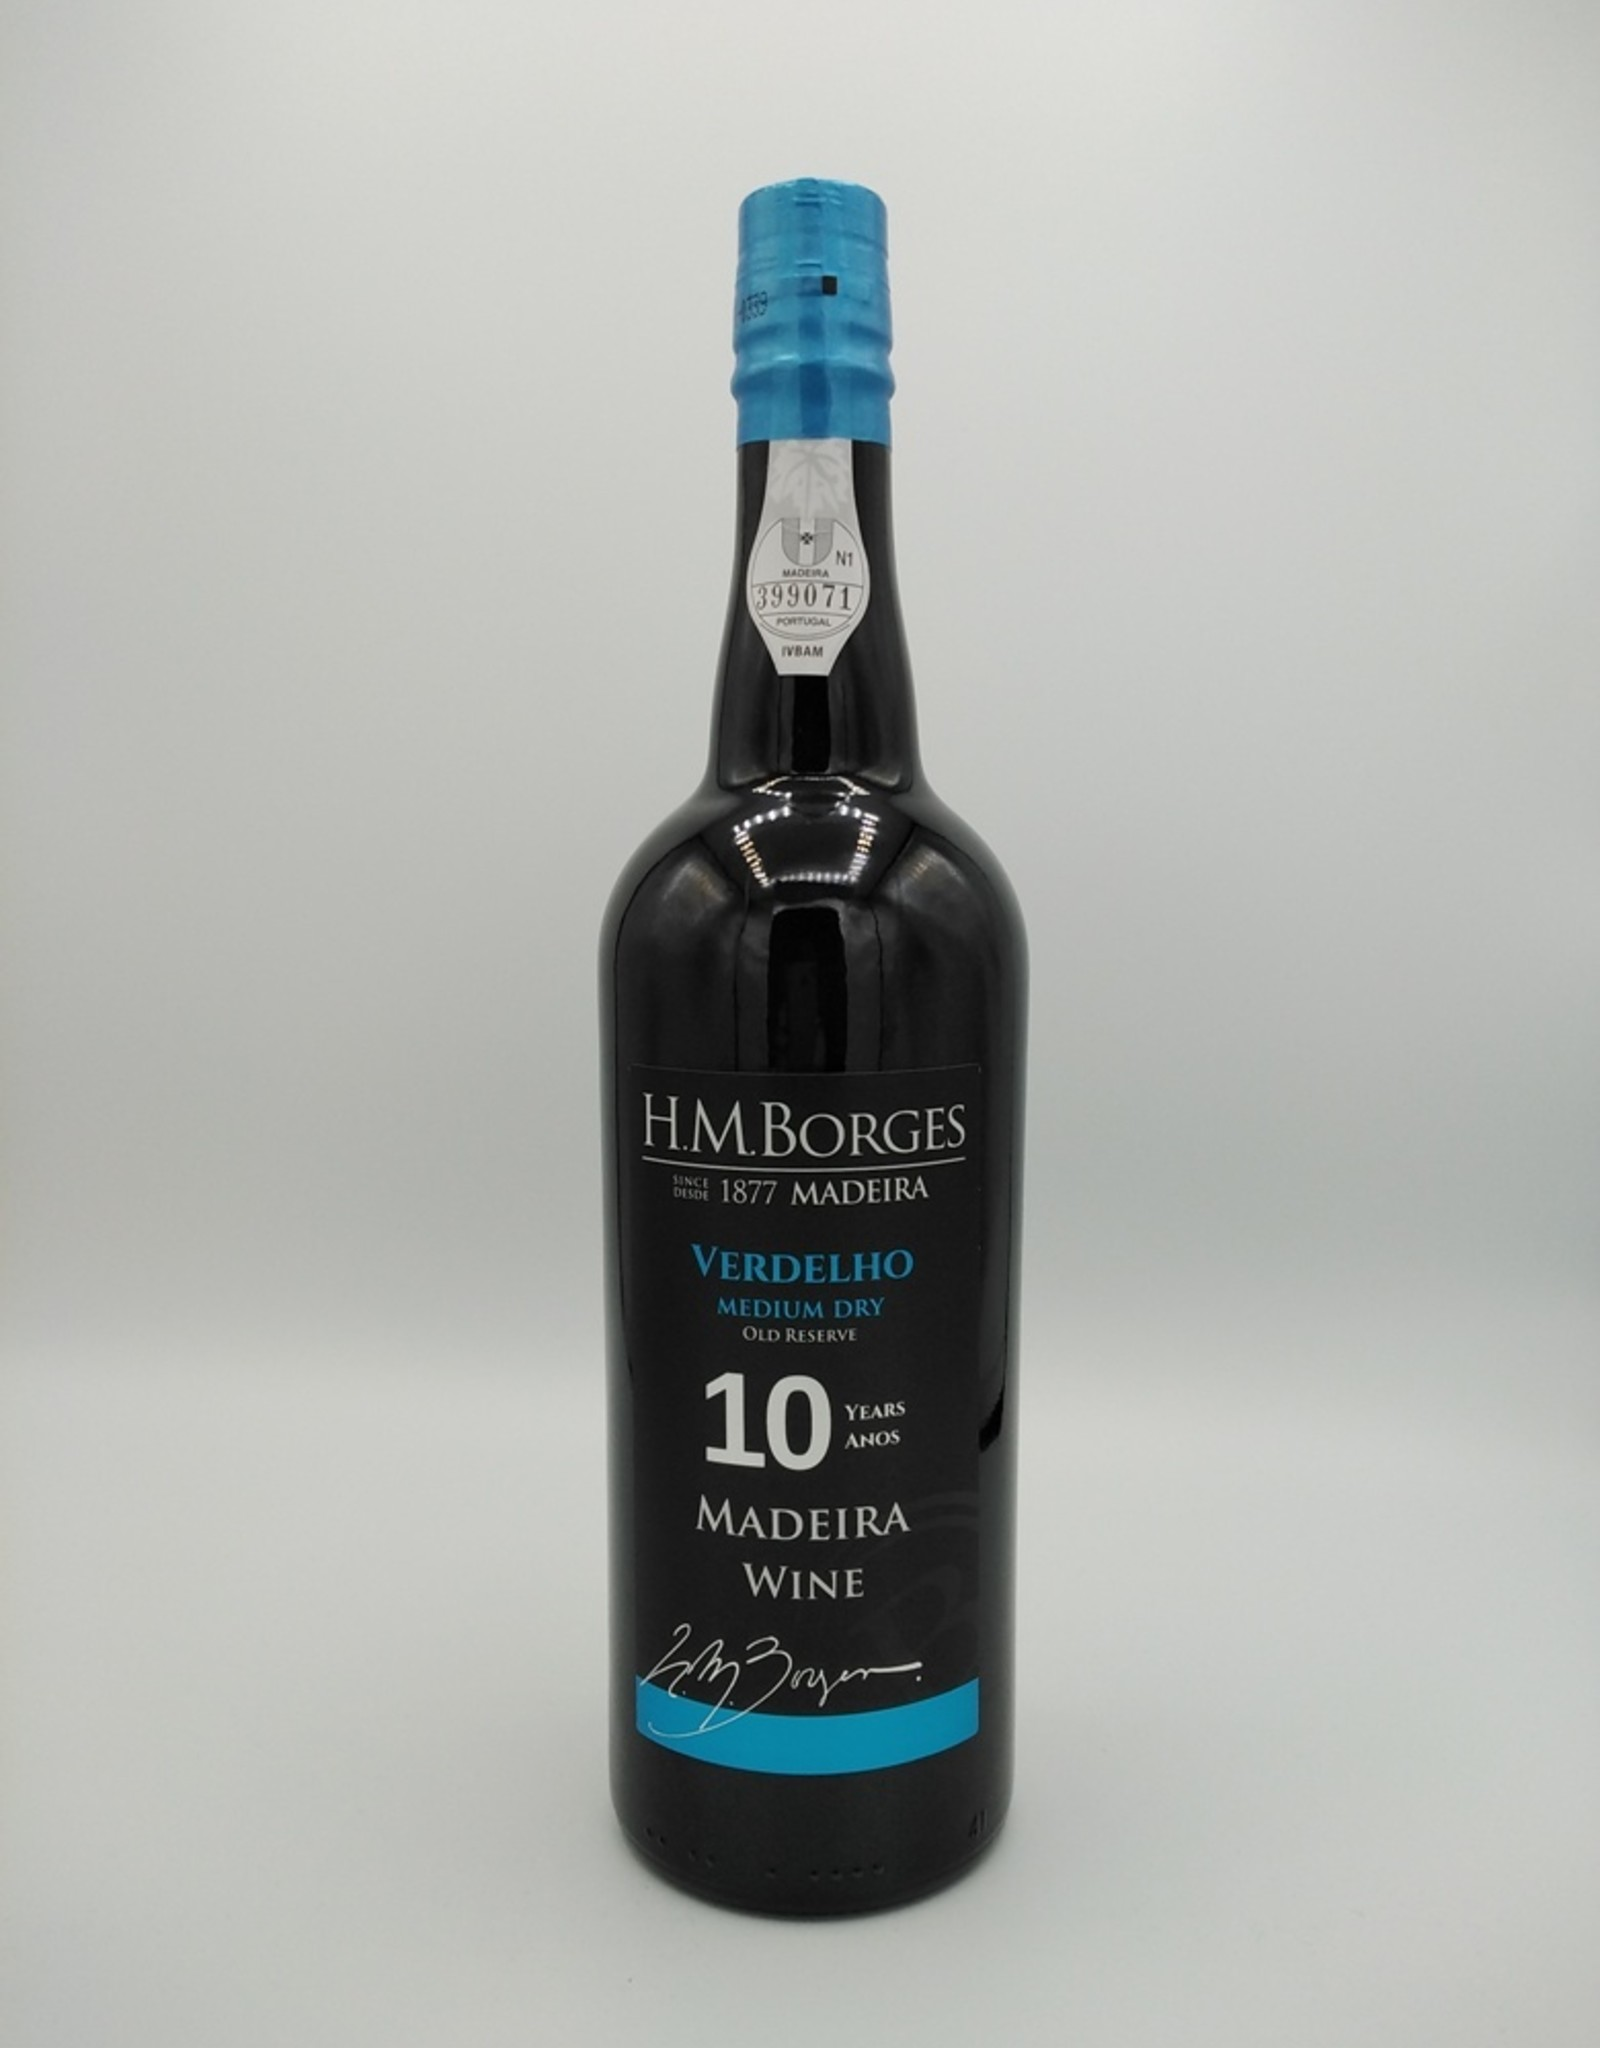 H.M. Borges H.M. Borges - Madeira Old Reserve Verdelho - 10 years